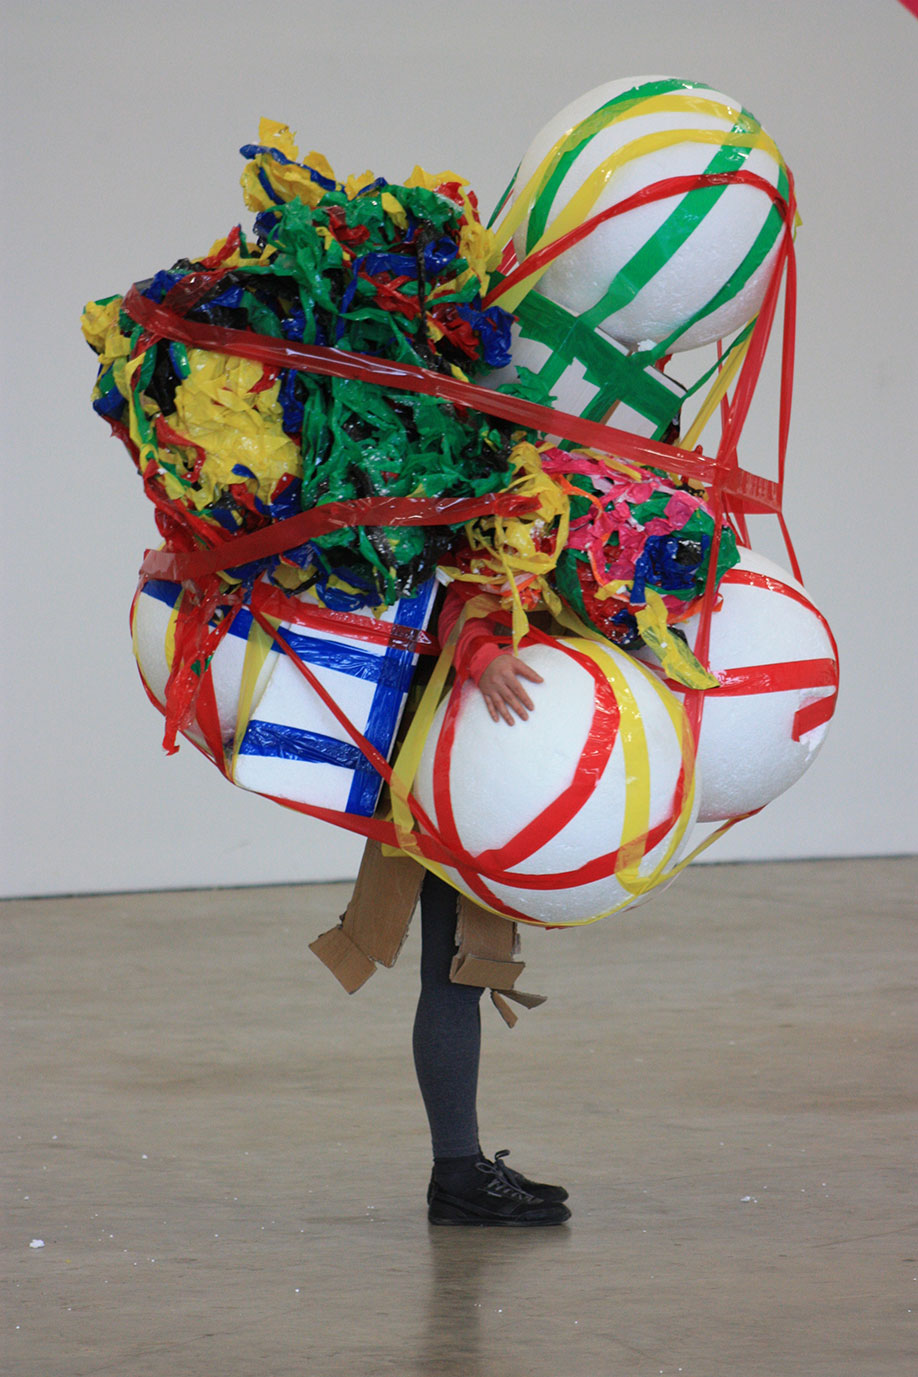 <b>Title:</b>MAKE<br /><b>Year:</b>2012<br /><b>Medium:</b>Performance and sculpture. Materials: Polystyrene, coloured packing tape, and cardboard. Photo: Gian Paolo Cottino<br />